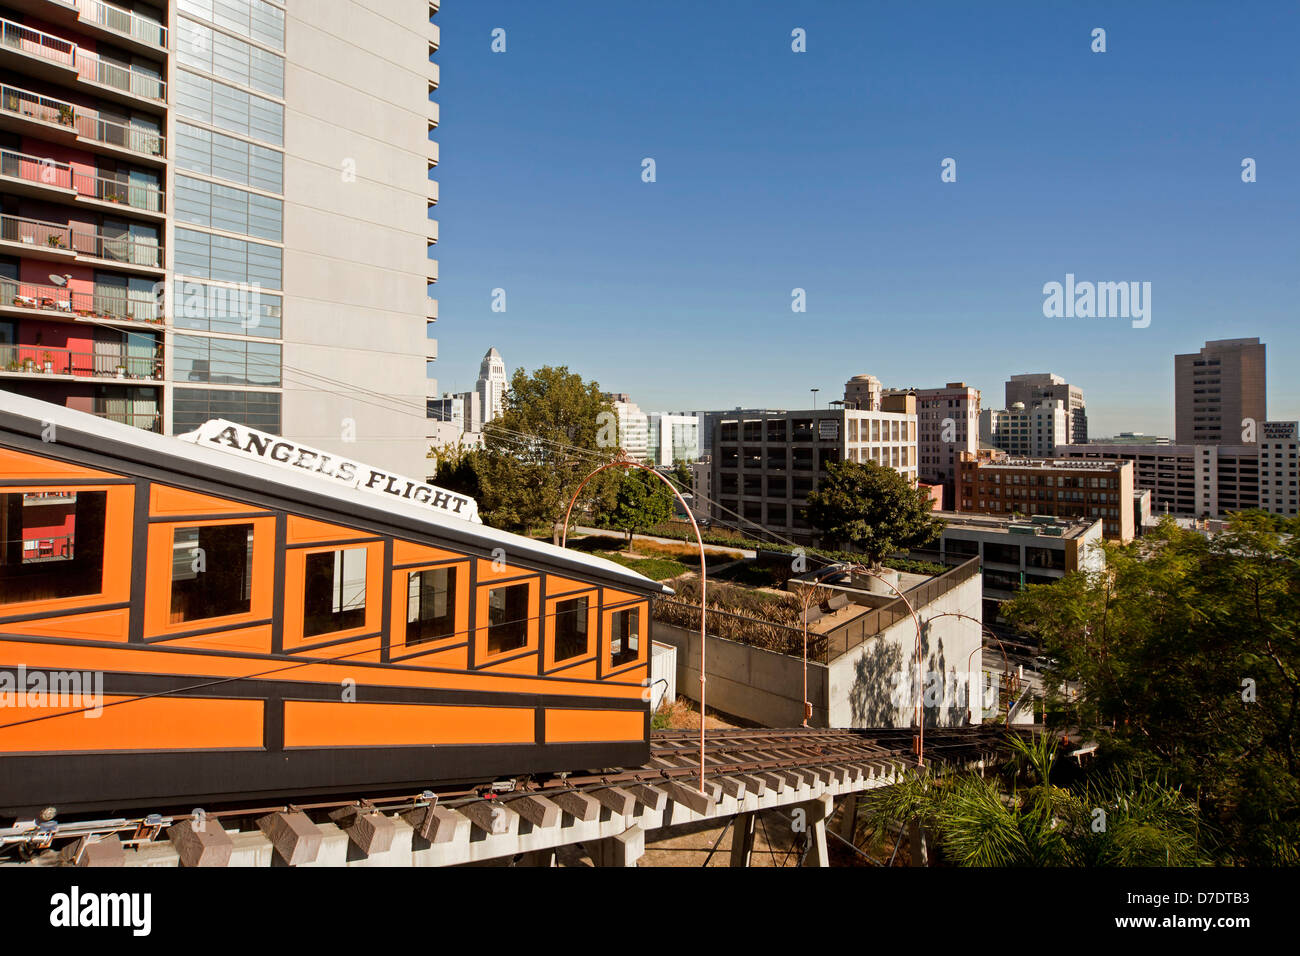 Angels Flight Railway, Downtown Los Angeles, California, United States of America, USA - Stock Image